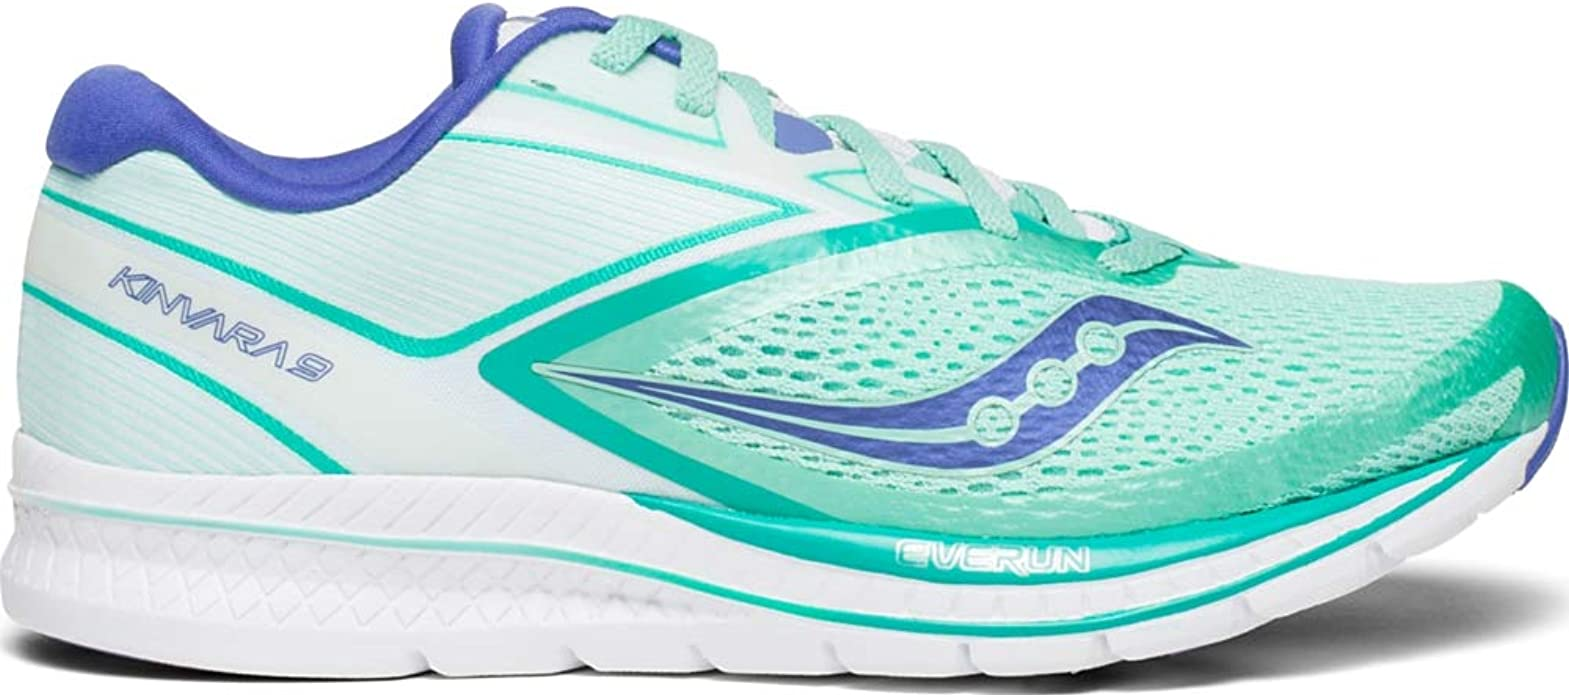 Saucony Women's Kinvara 9 Running Shoe review